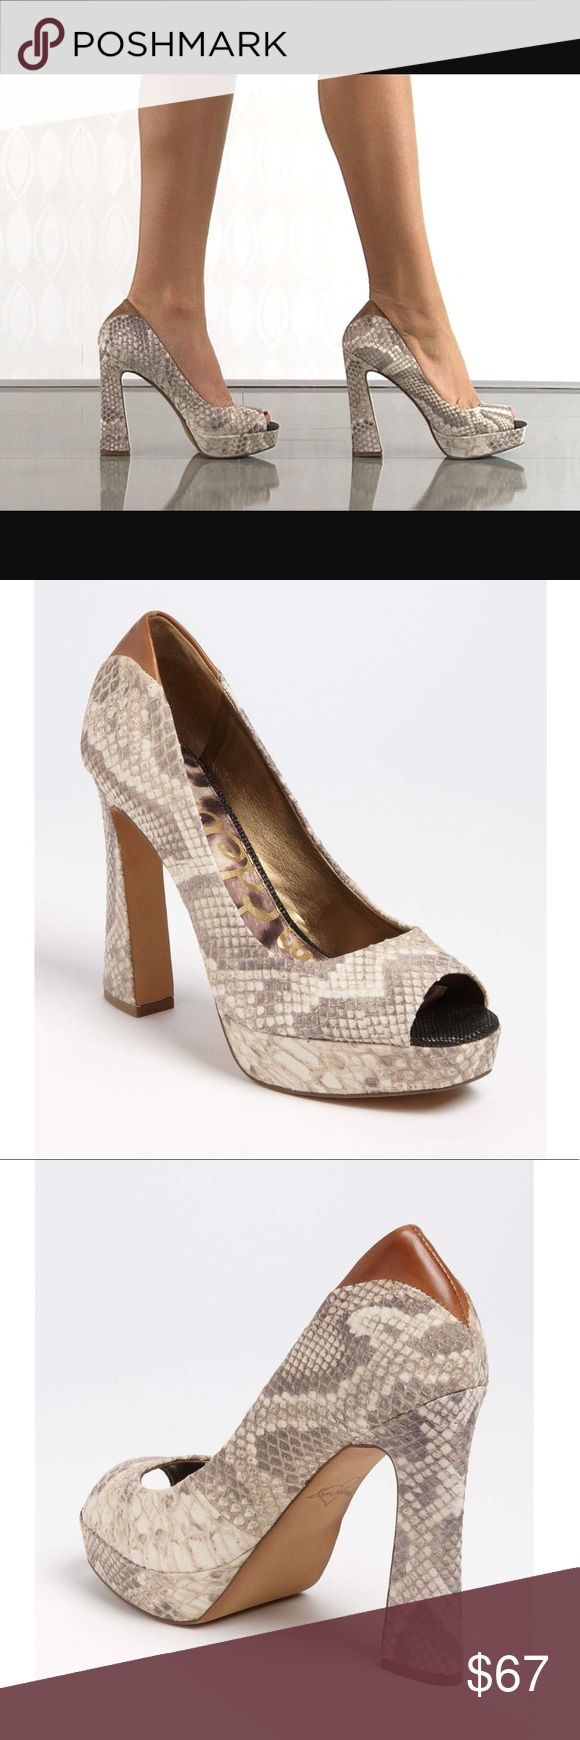 Sam Edelman snakeskin tacoma flared high heel Worn once! Size 7.5. Genuine leather upper. Please see the 7th picture for additional details and features. Super cute flared heel and definitely a showstopper! Sam Edelman snakeskin tacoma flared high heel. Retail at $150! Sam Edelman Shoes Heels